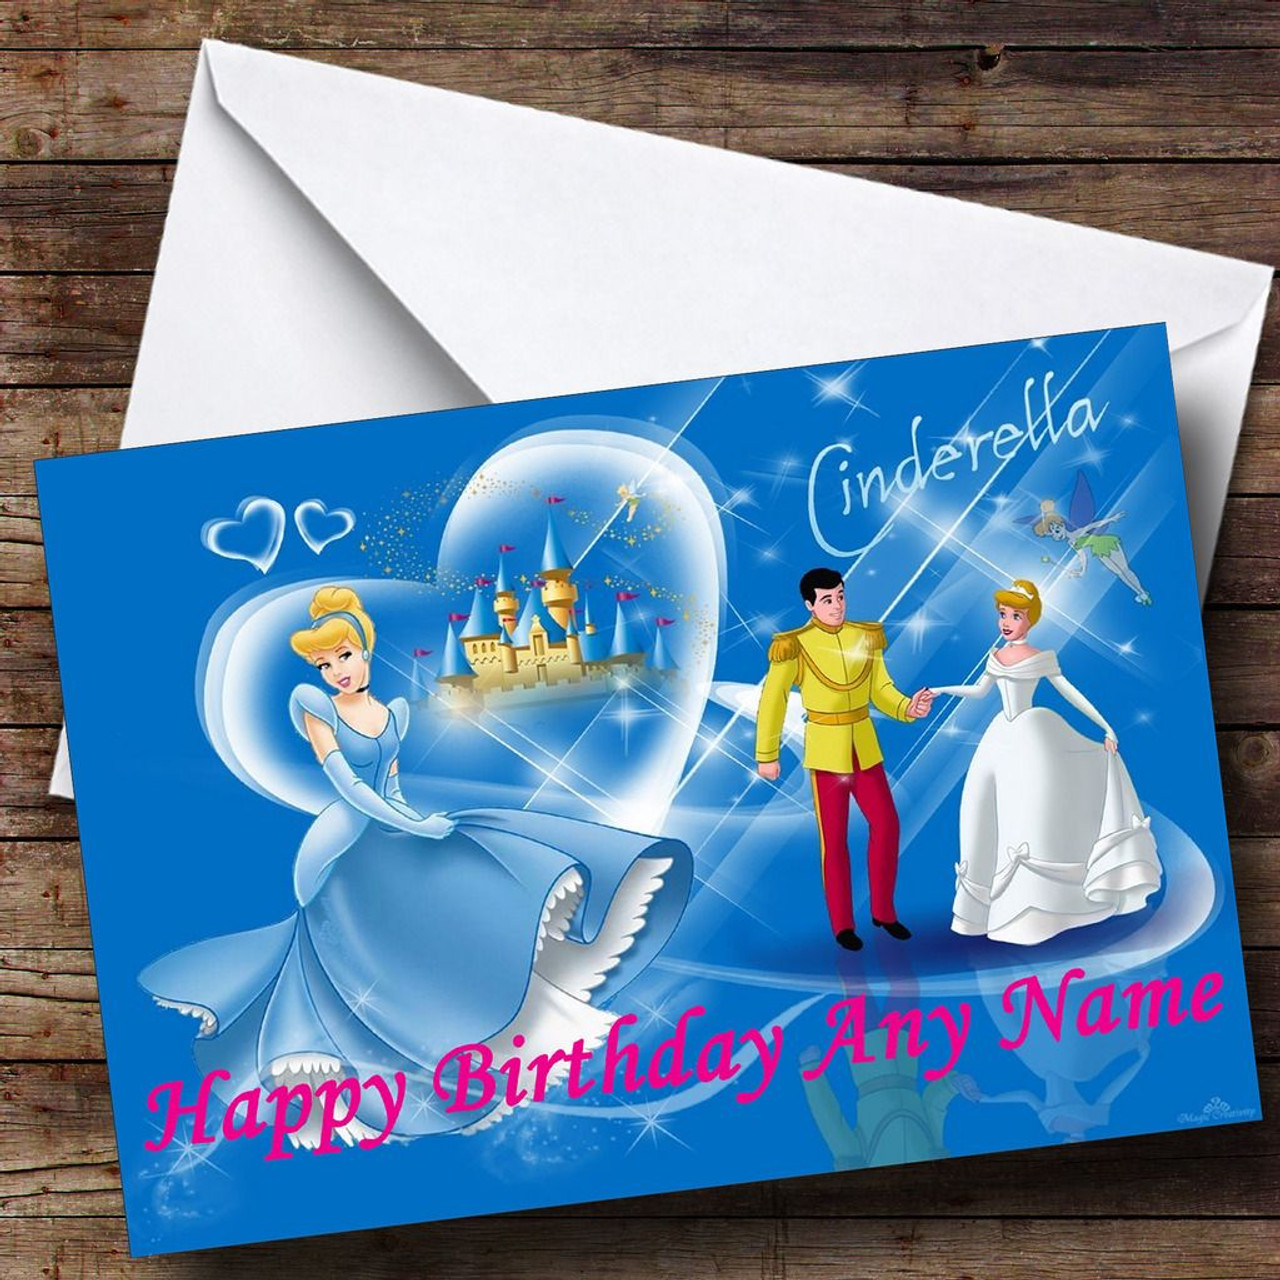 Blue Cinderella Personalised Birthday Card The Card Zoo – Cinderella Birthday Card